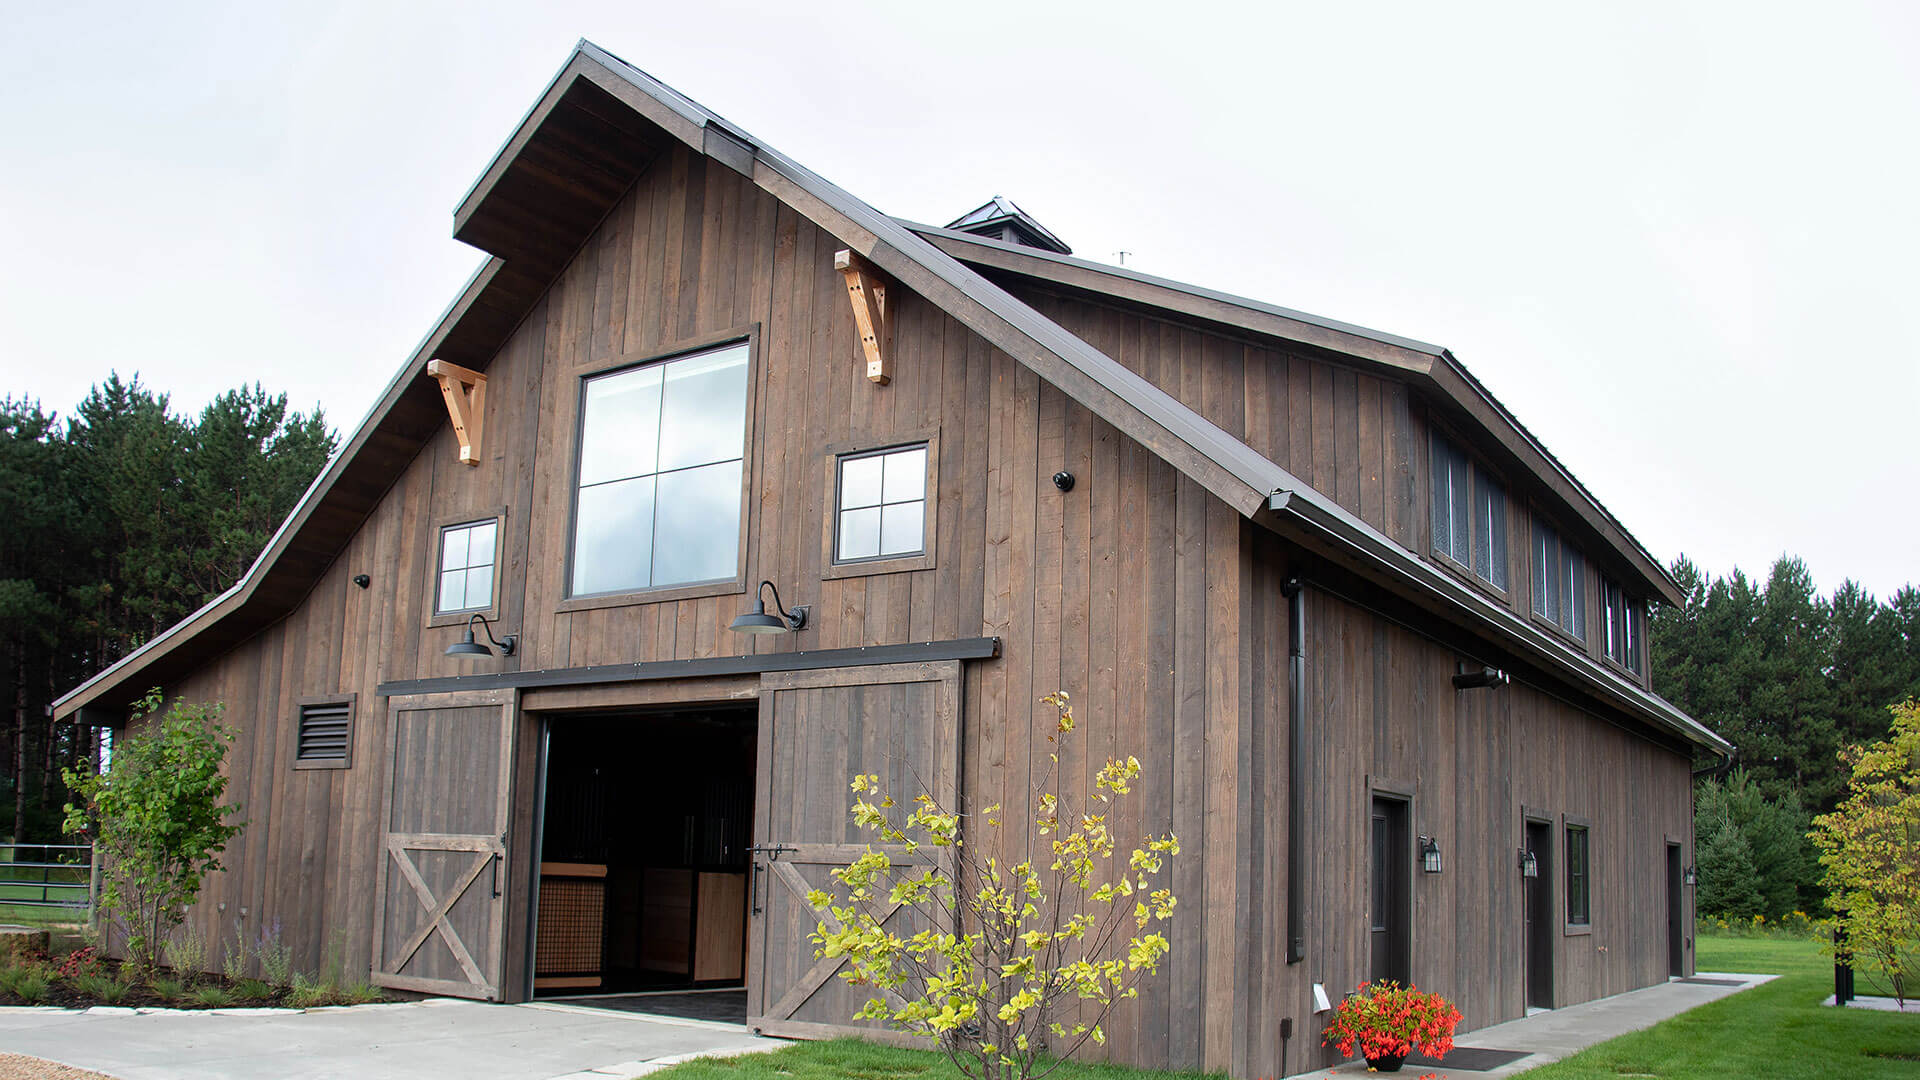 Twin Cities New Construction Barn Pros Equestrian Barn Stillwater Minnesota front view with barn doors open built by Red Pine Builders